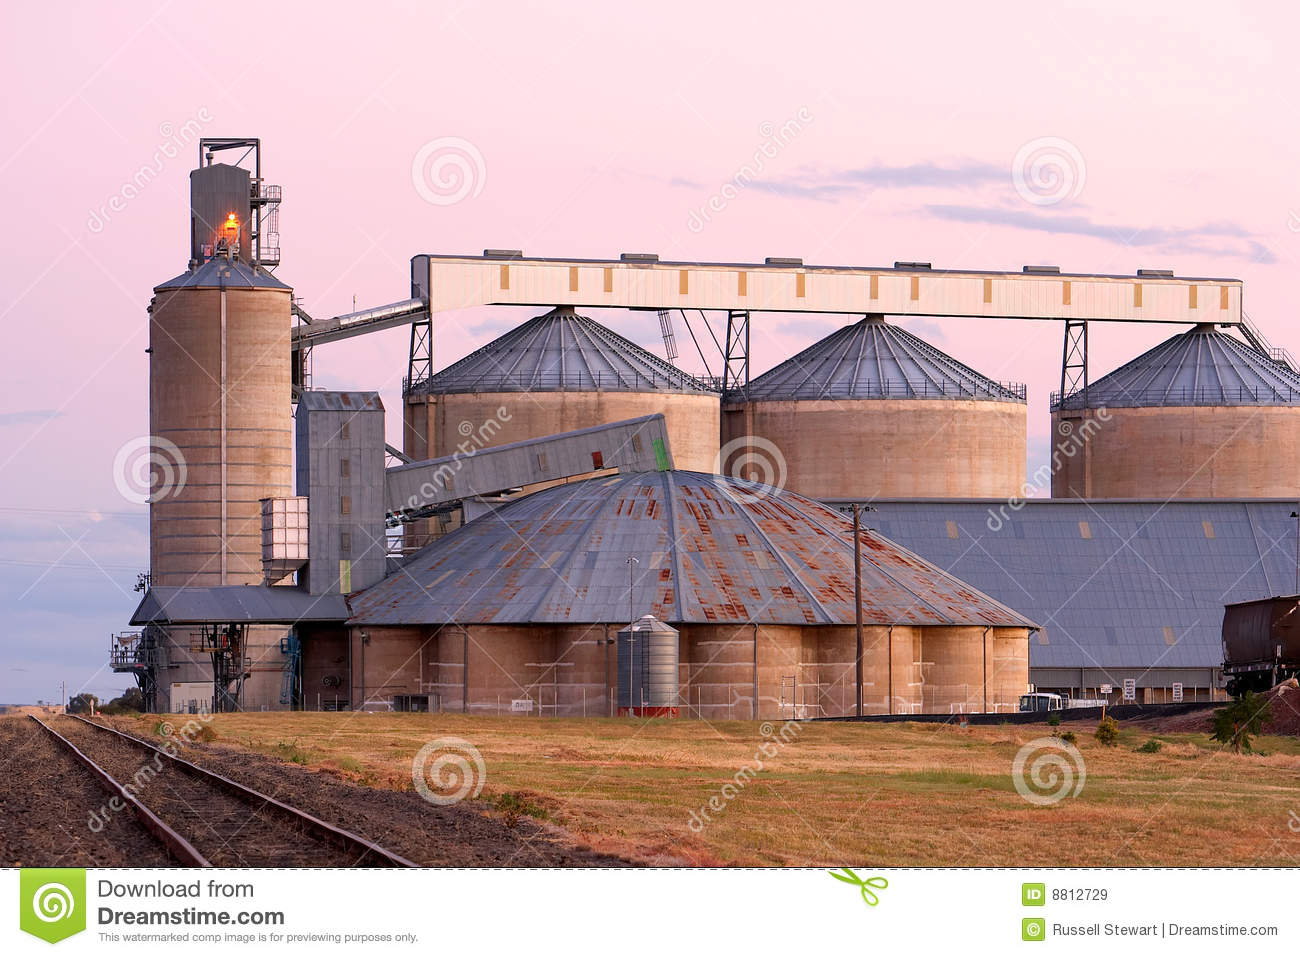 Silos bathed in pink after sunset light